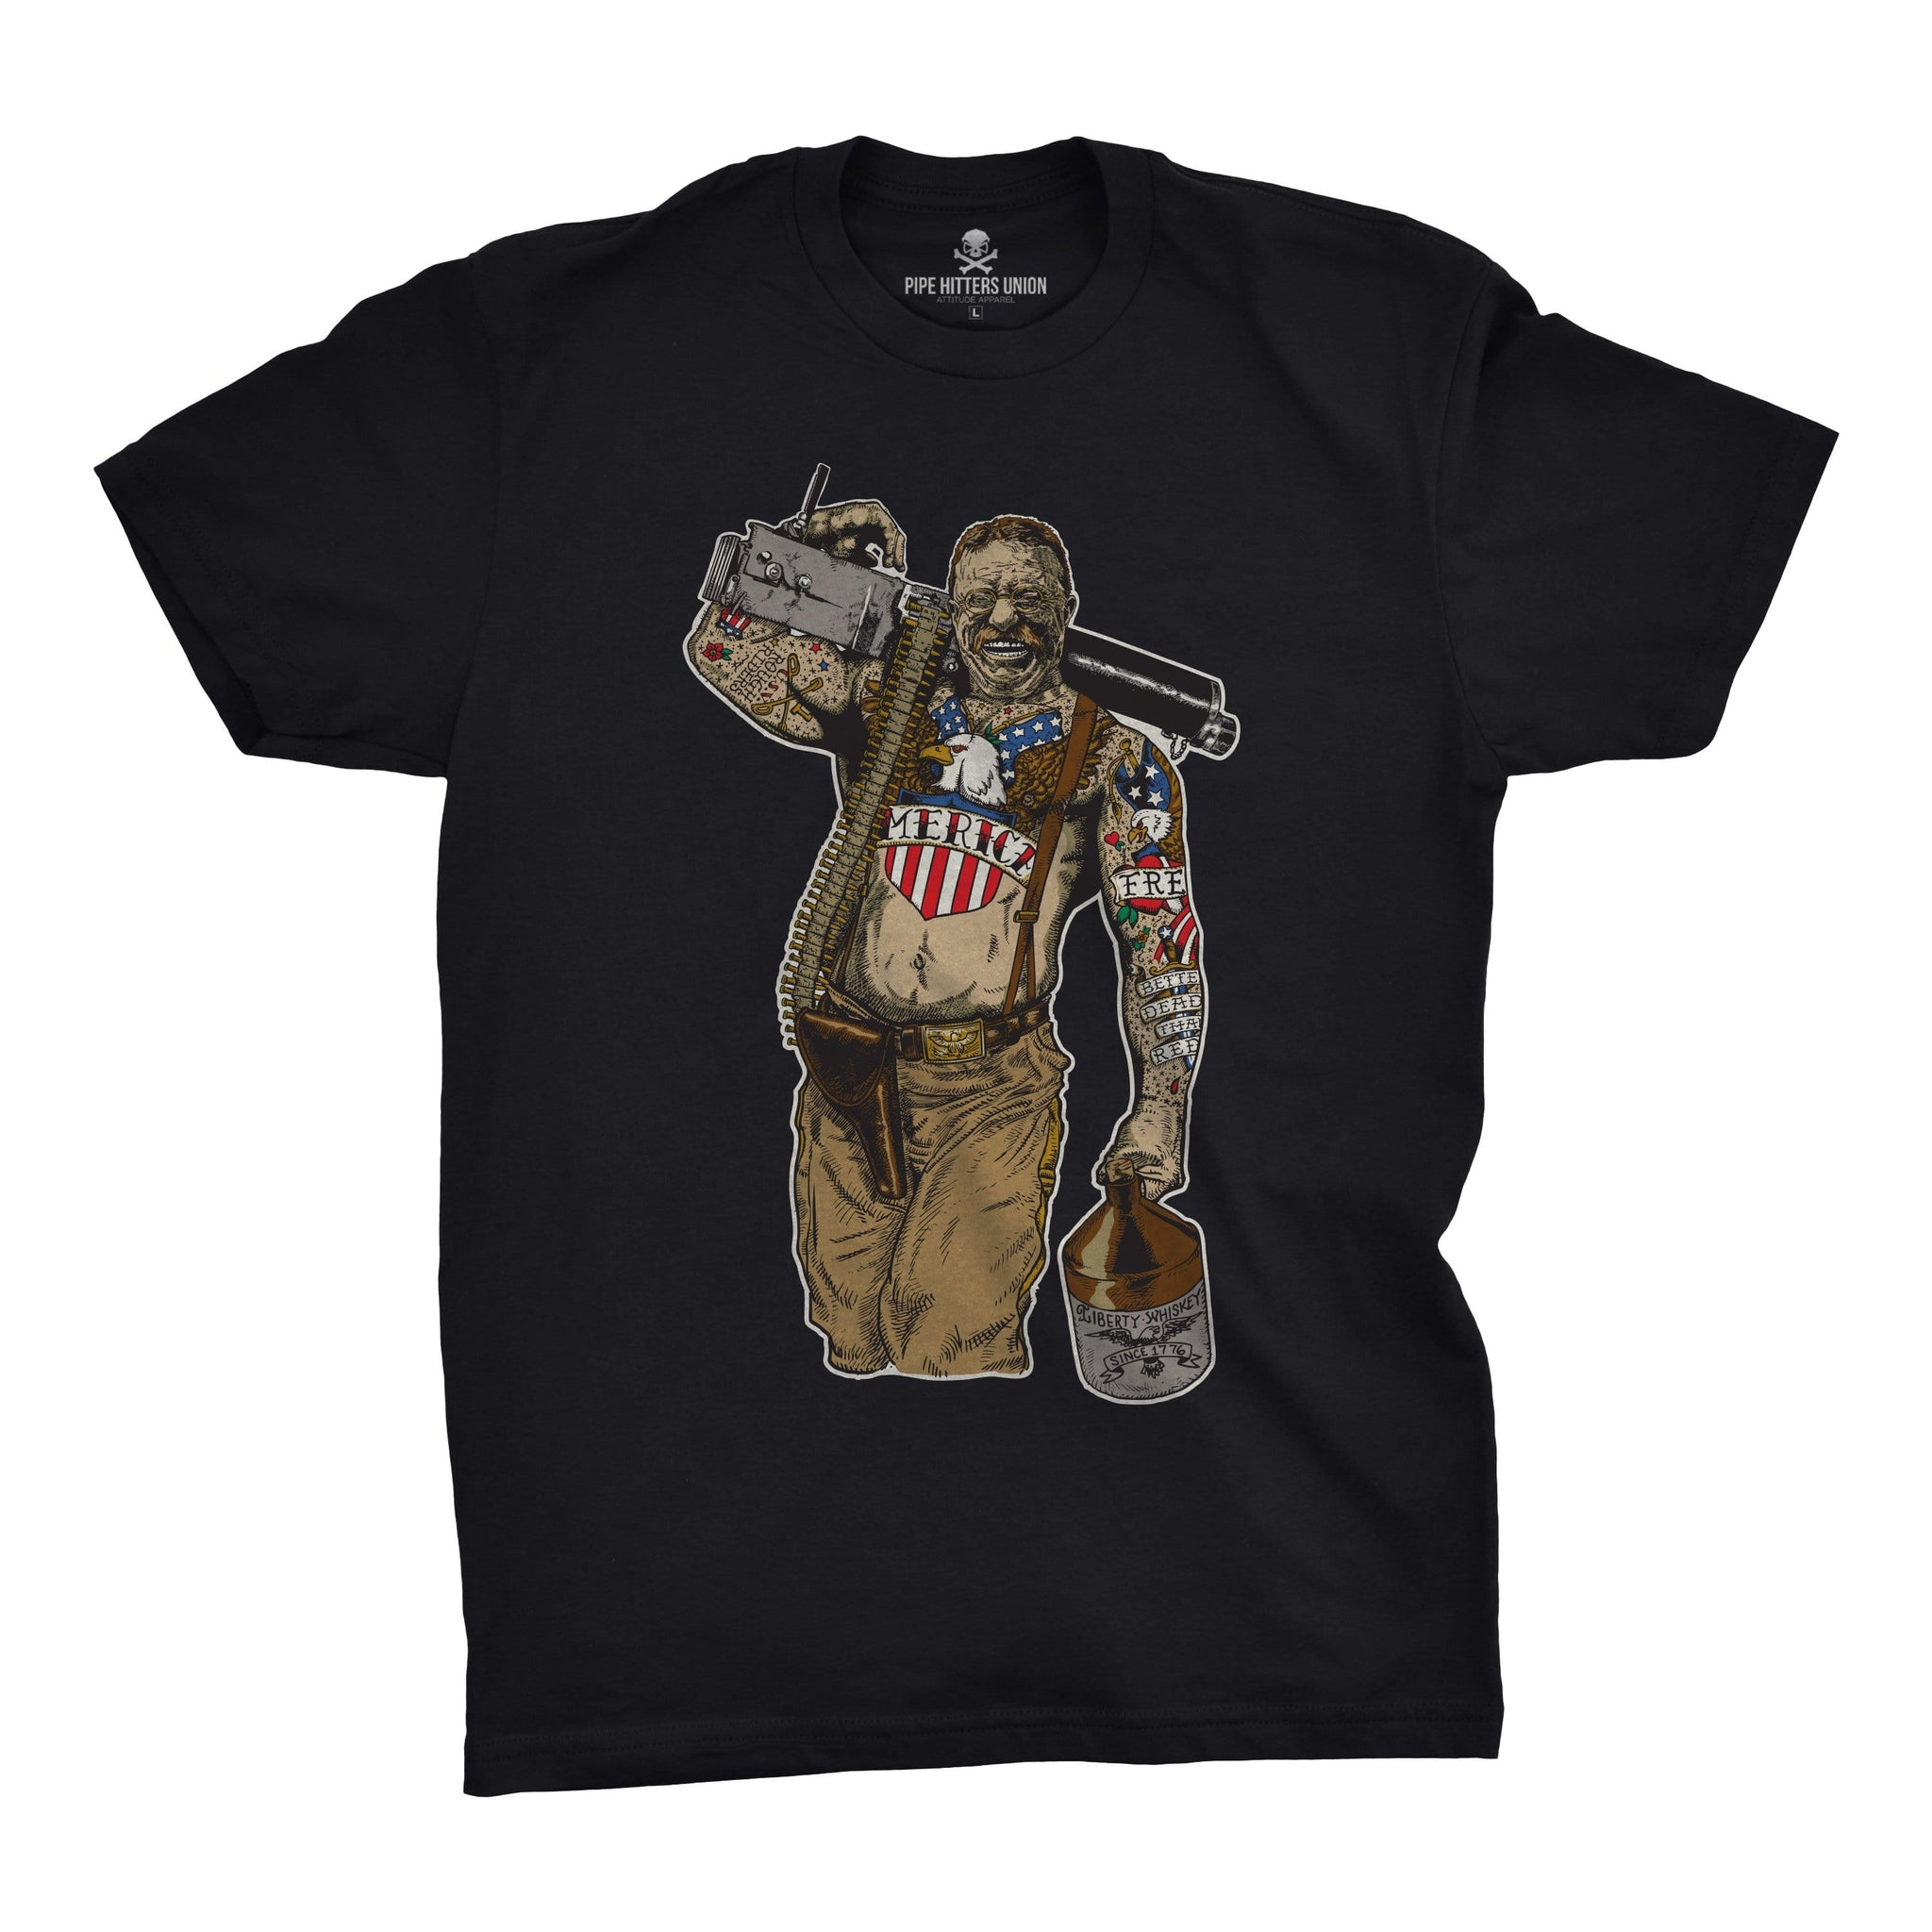 Original Pipe Hitter - Teddy - Black - T-Shirts - Pipe Hitters Union